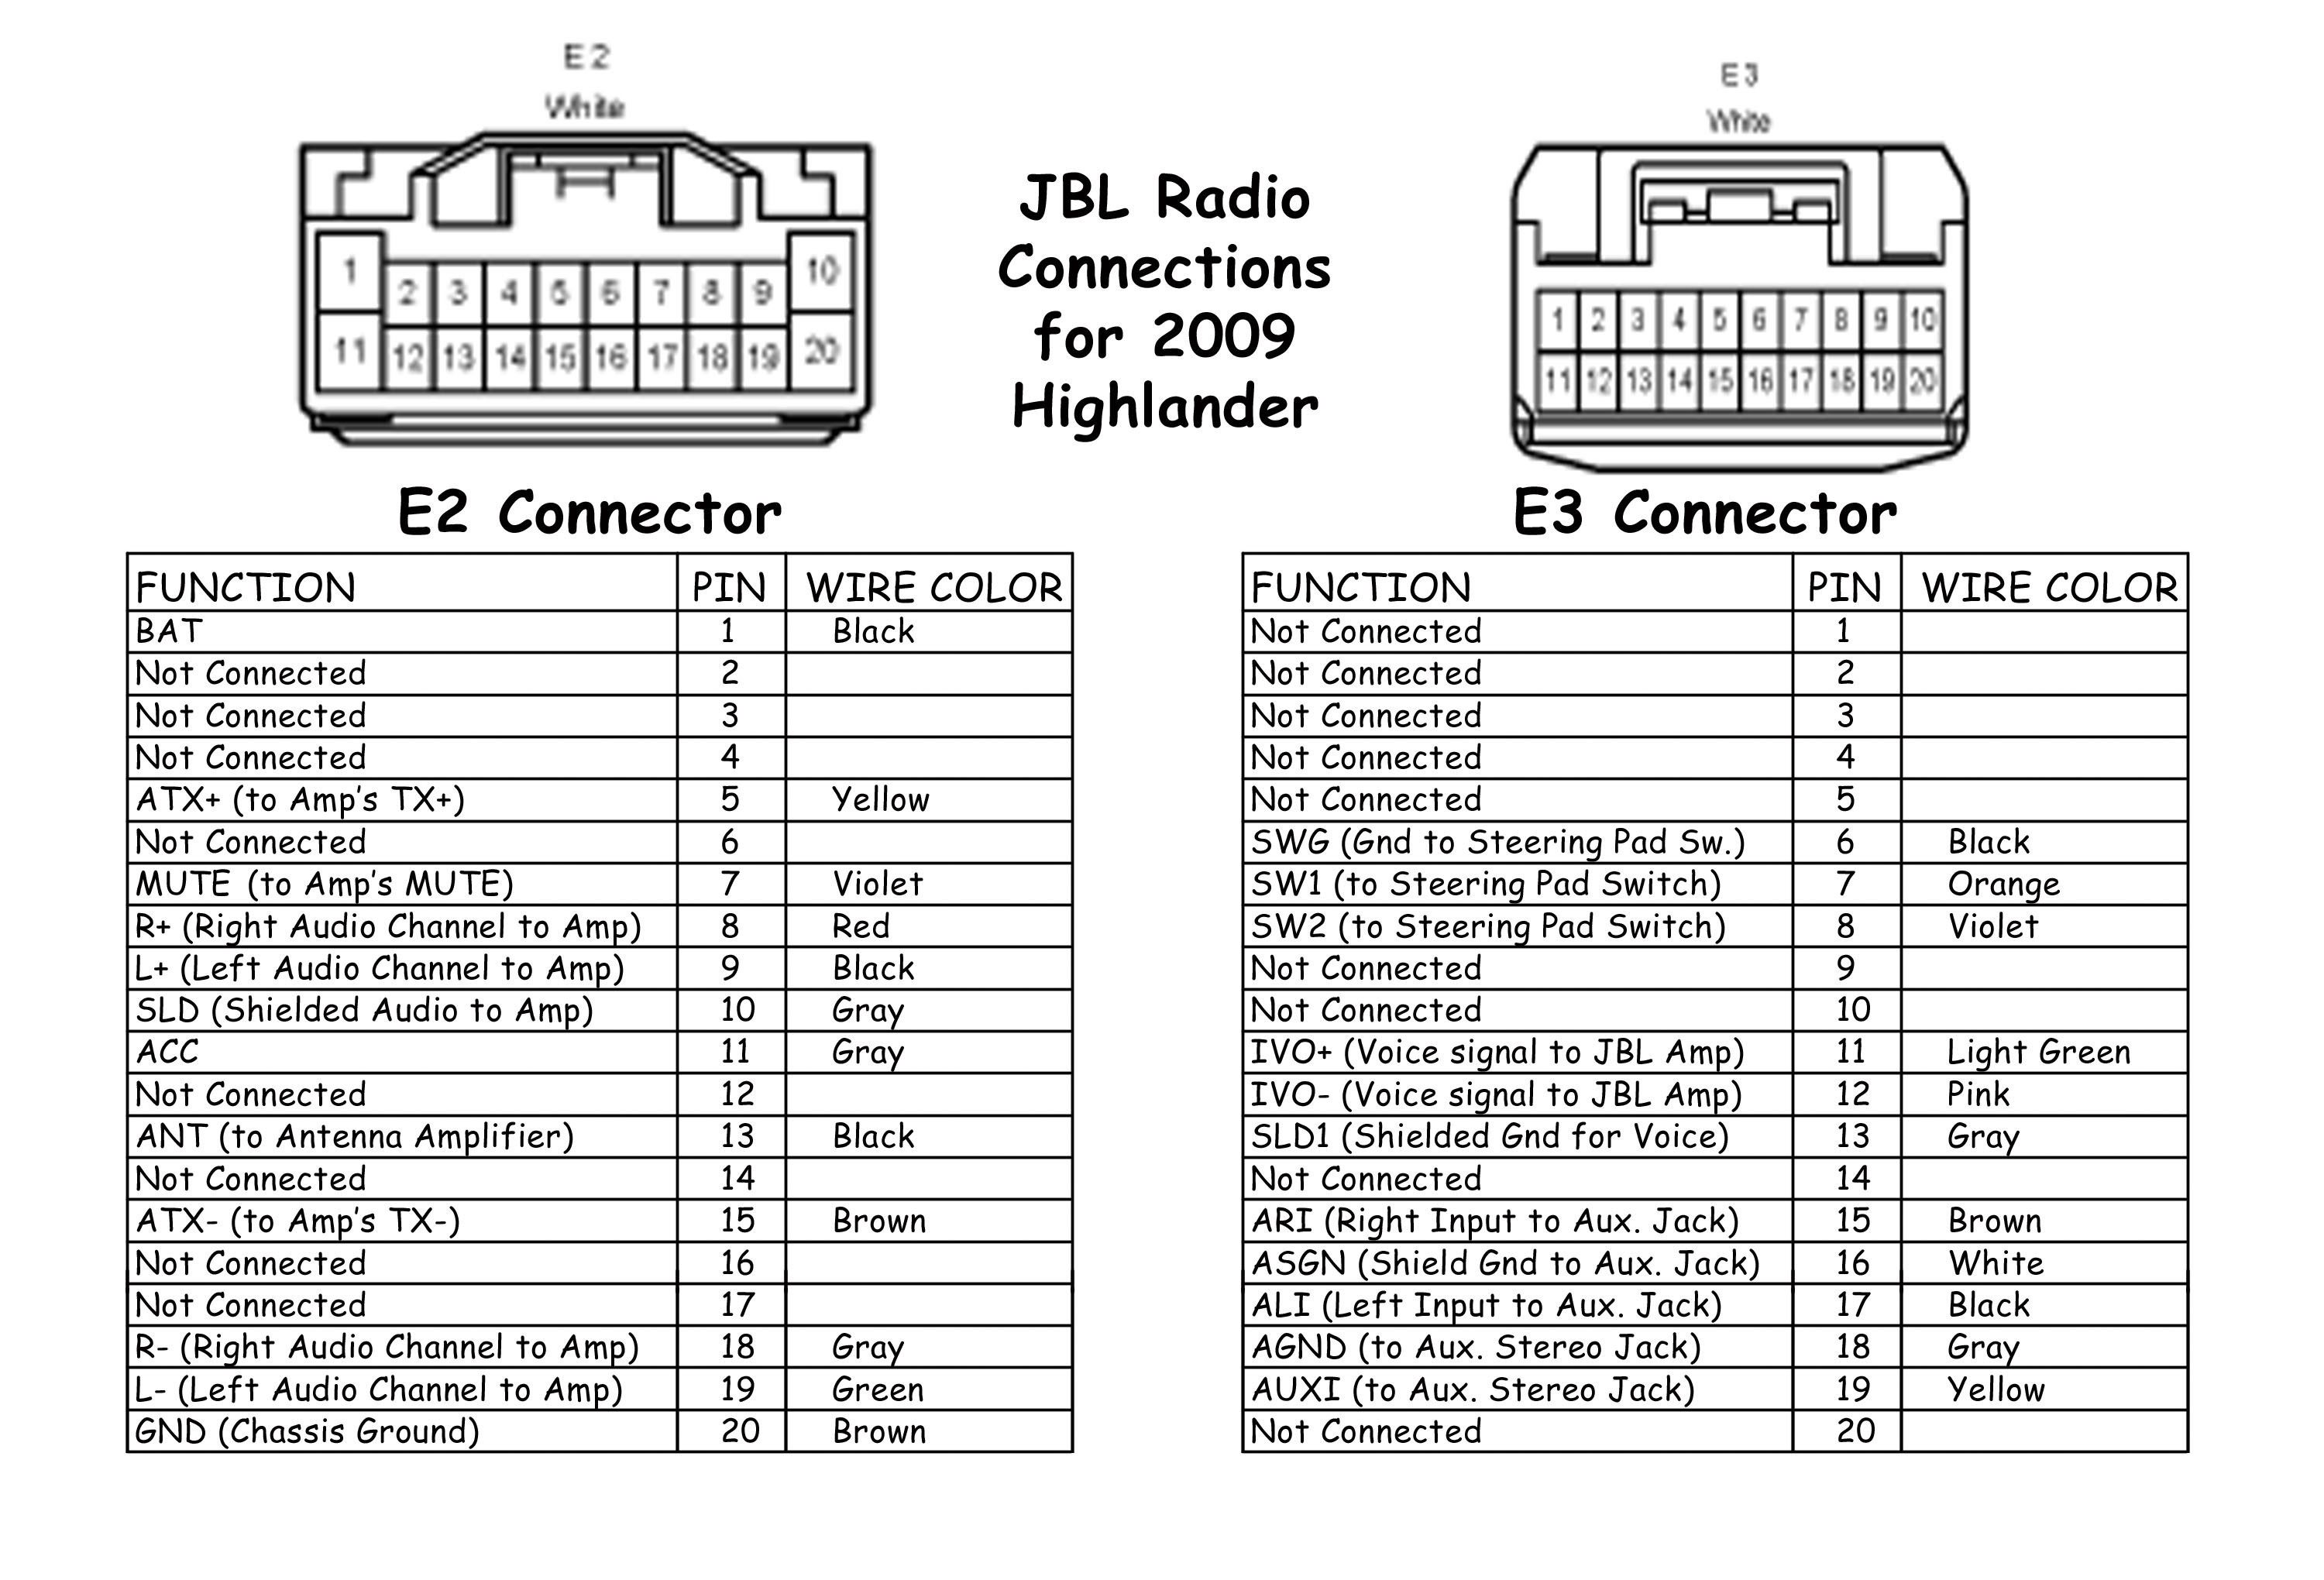 Pin By Nattapong Songmuang On แผงวงจร Pioneer Car Stereo Electrical Wiring Diagram Car Stereo